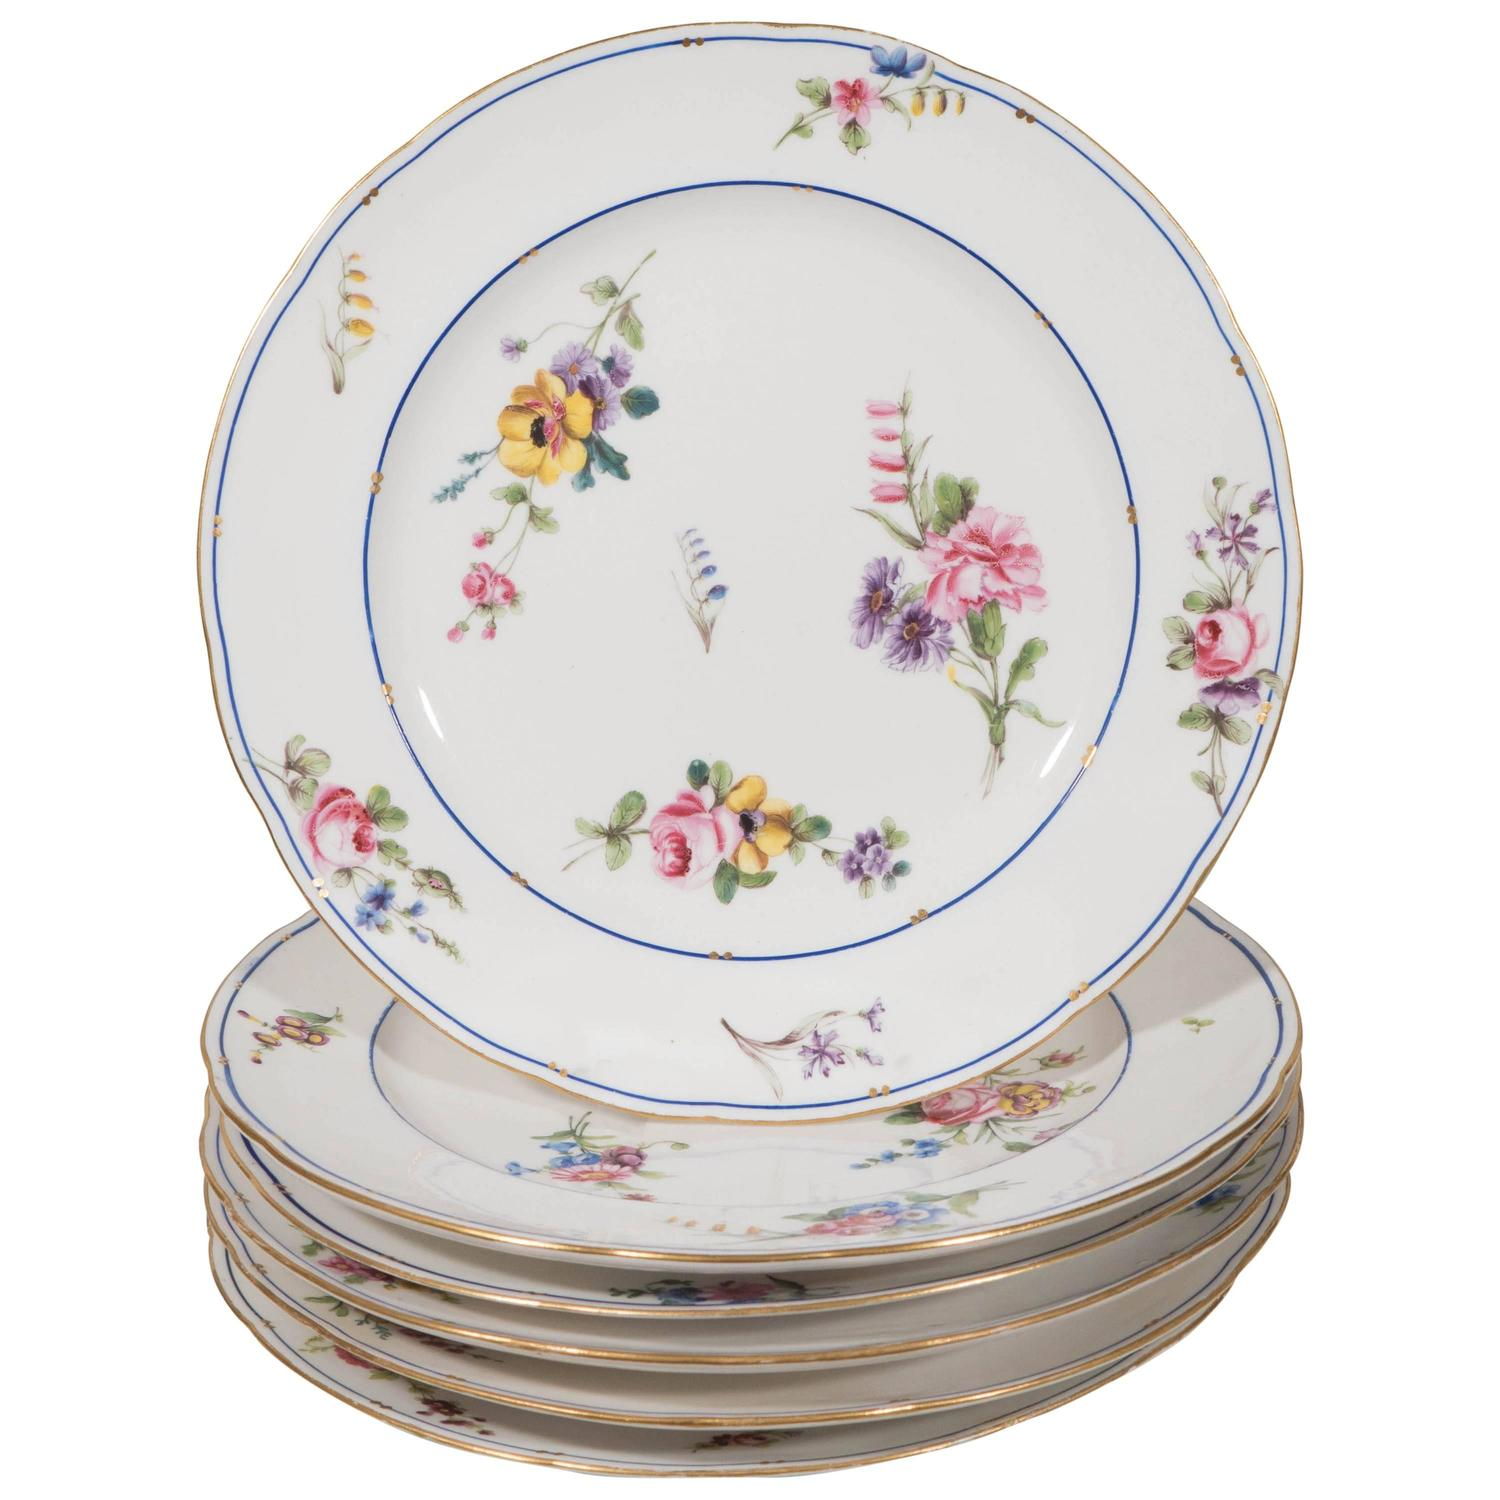 sc 1 st  1stDibs & Dozen Sèvres Porcelain Dishes For Sale at 1stdibs